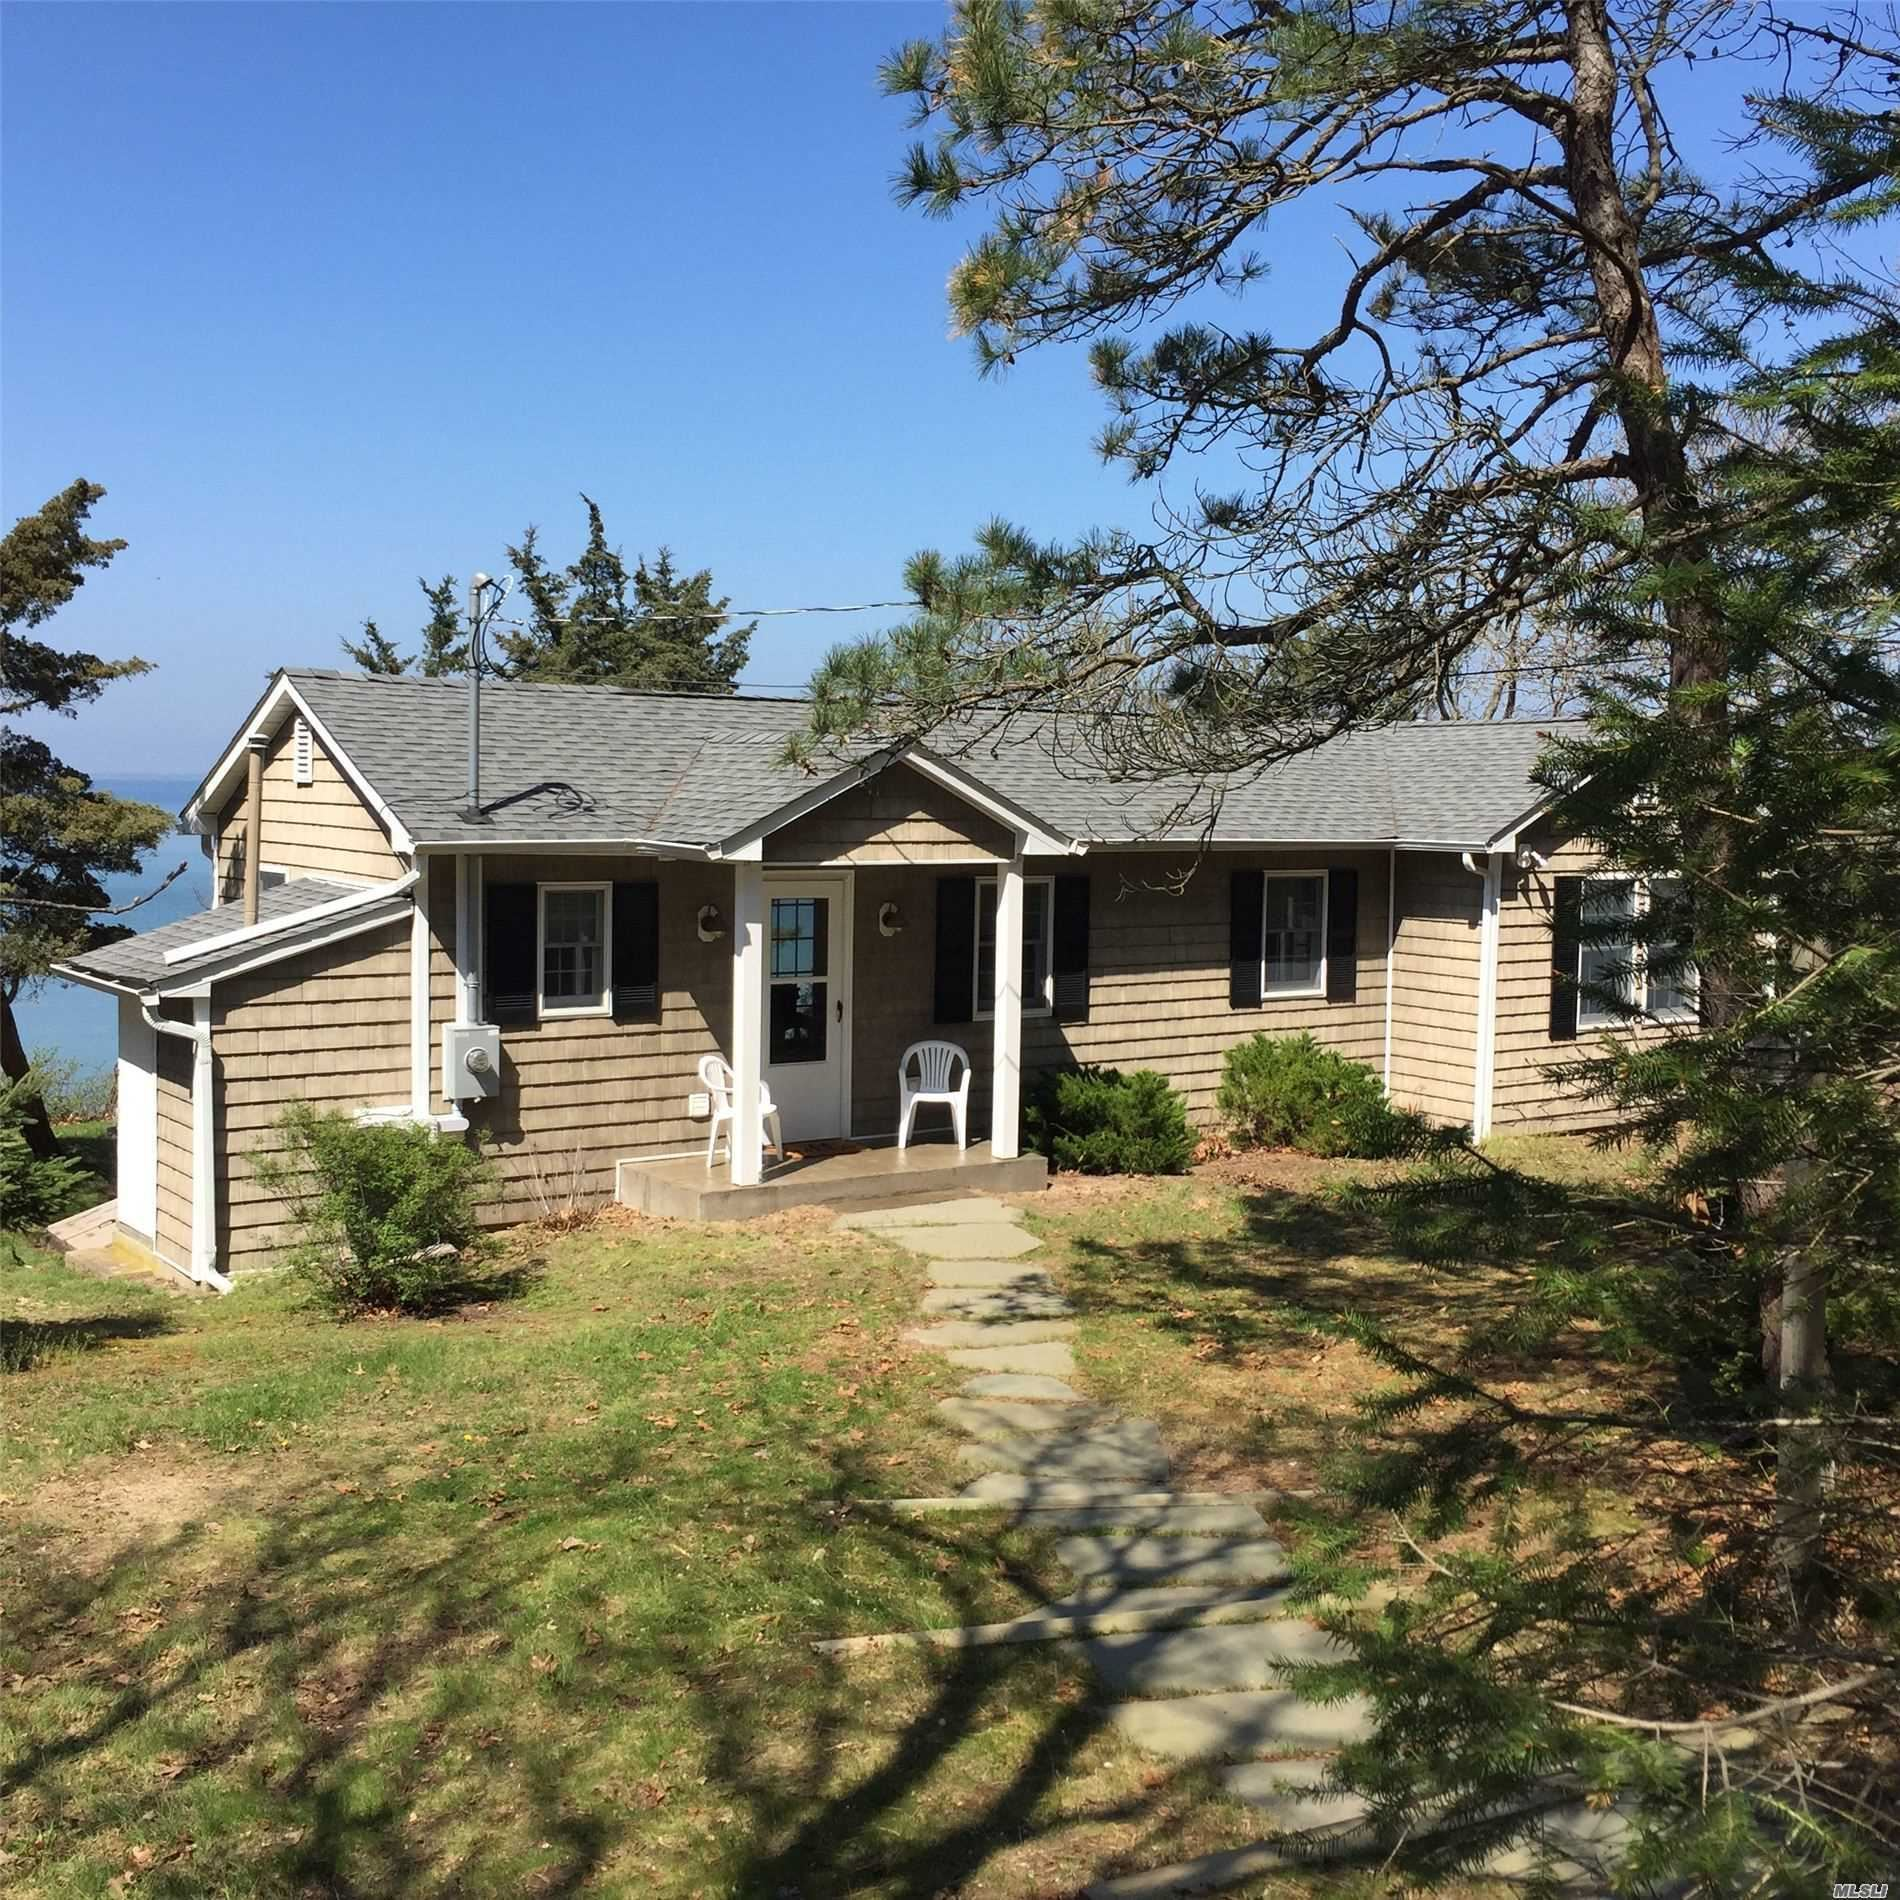 8 Old North Hwy, Hampton Bays, NY 11946 - MLS#: 3210217